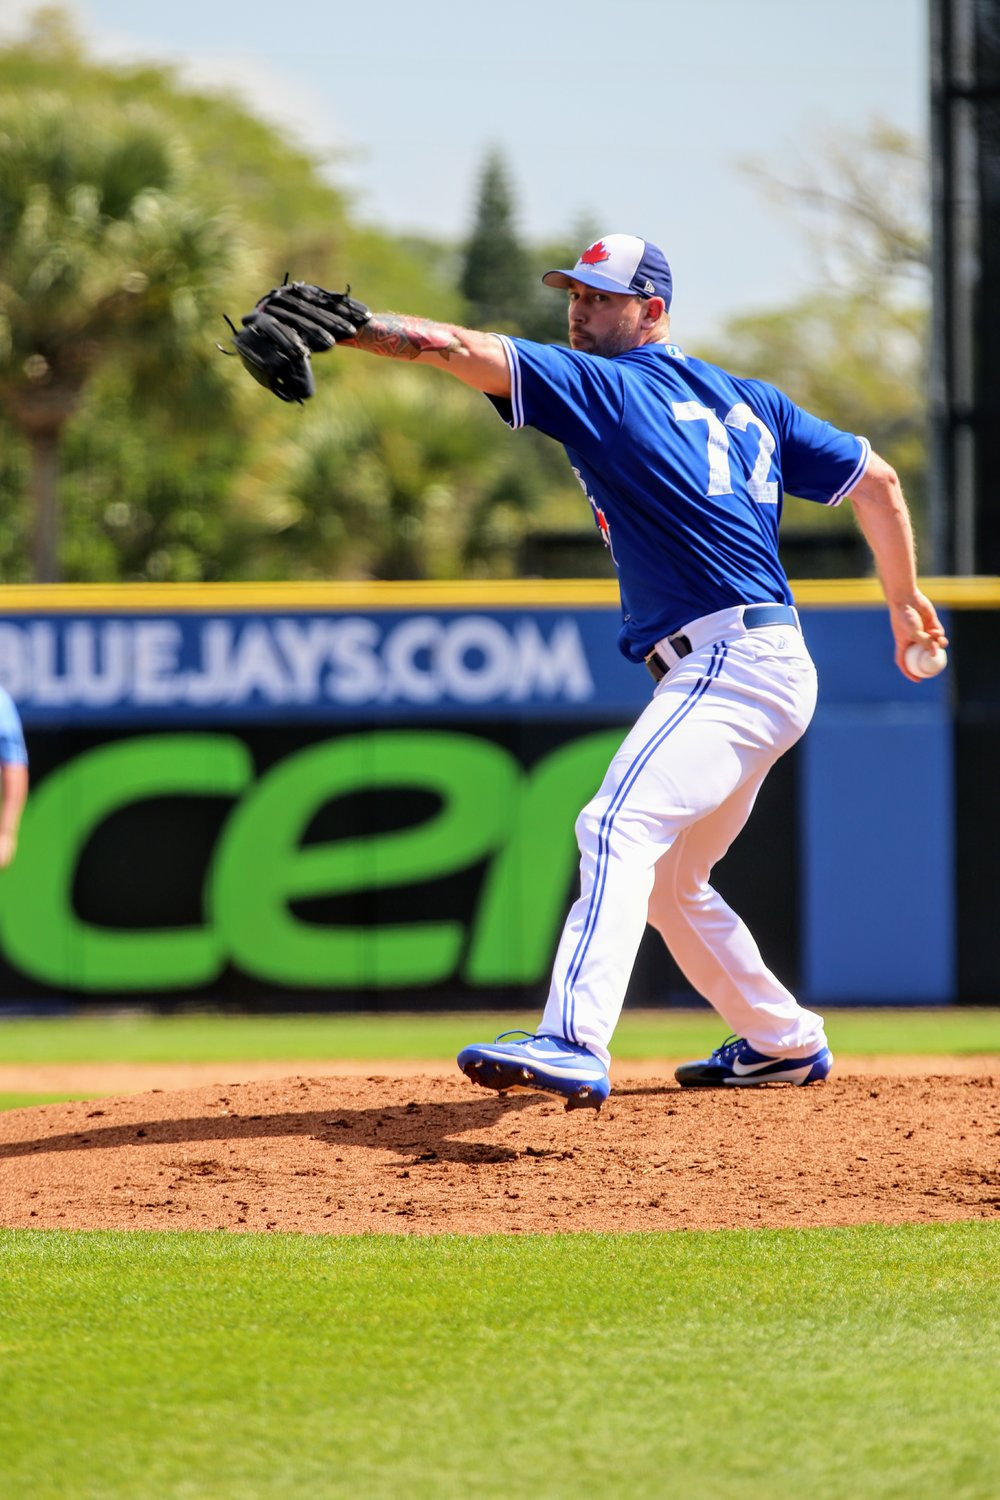 Port Dover, Ont., native John Axford became the seventh Canadian pitcher to appear in 500 major league games when he tossed two scoreless innings on Tuesday. Photo Credit: Amanda Fewer